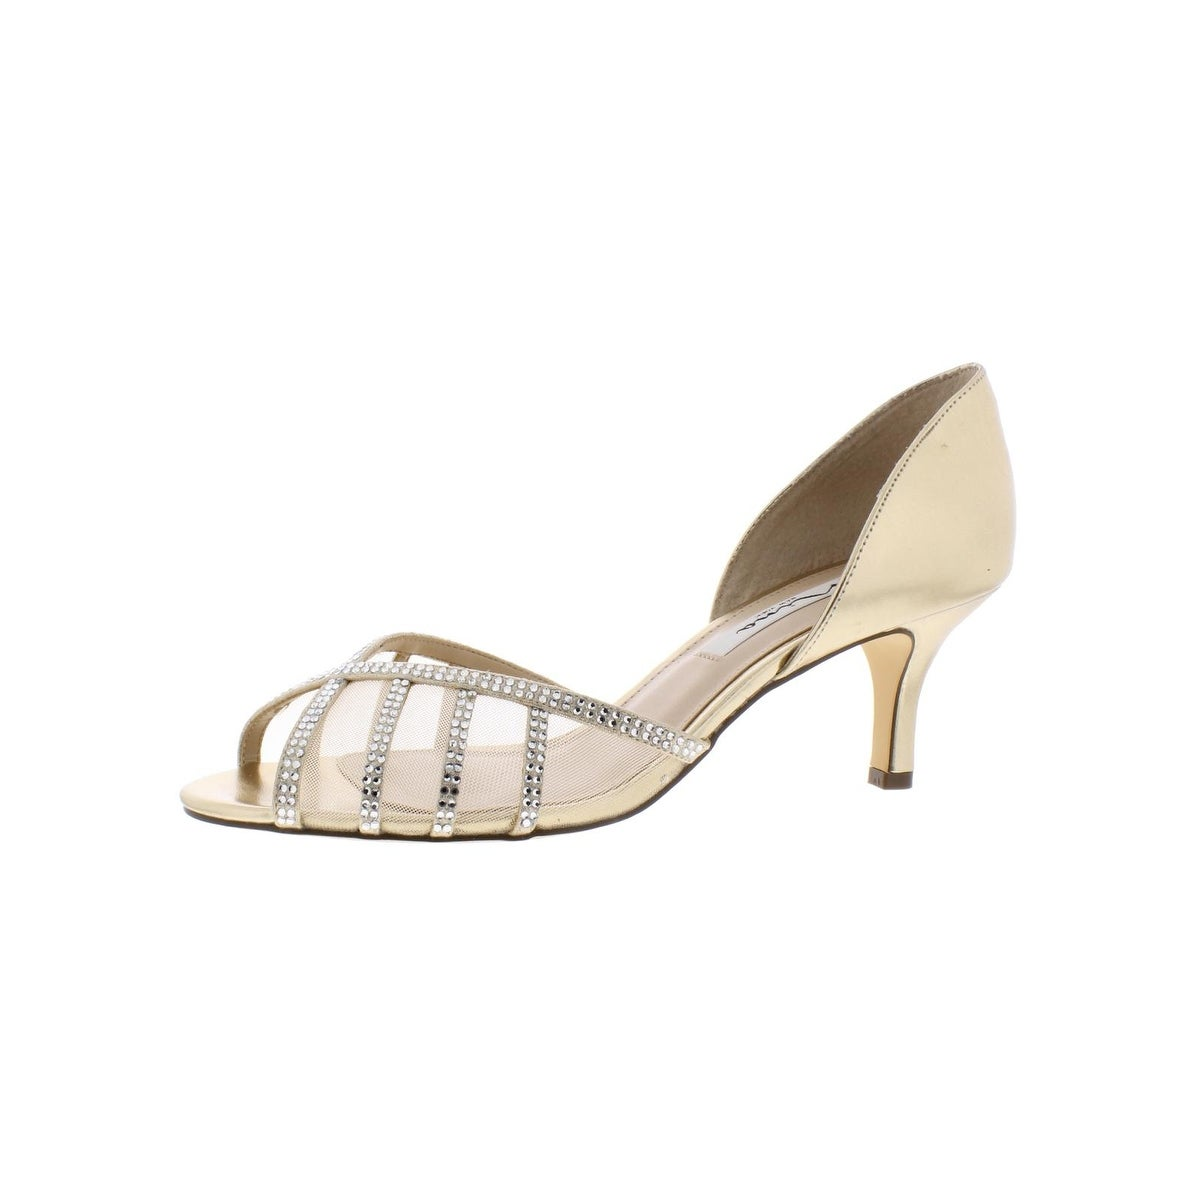 9d0f45a99 Nina Shoes | Shop our Best Clothing & Shoes Deals Online at Overstock